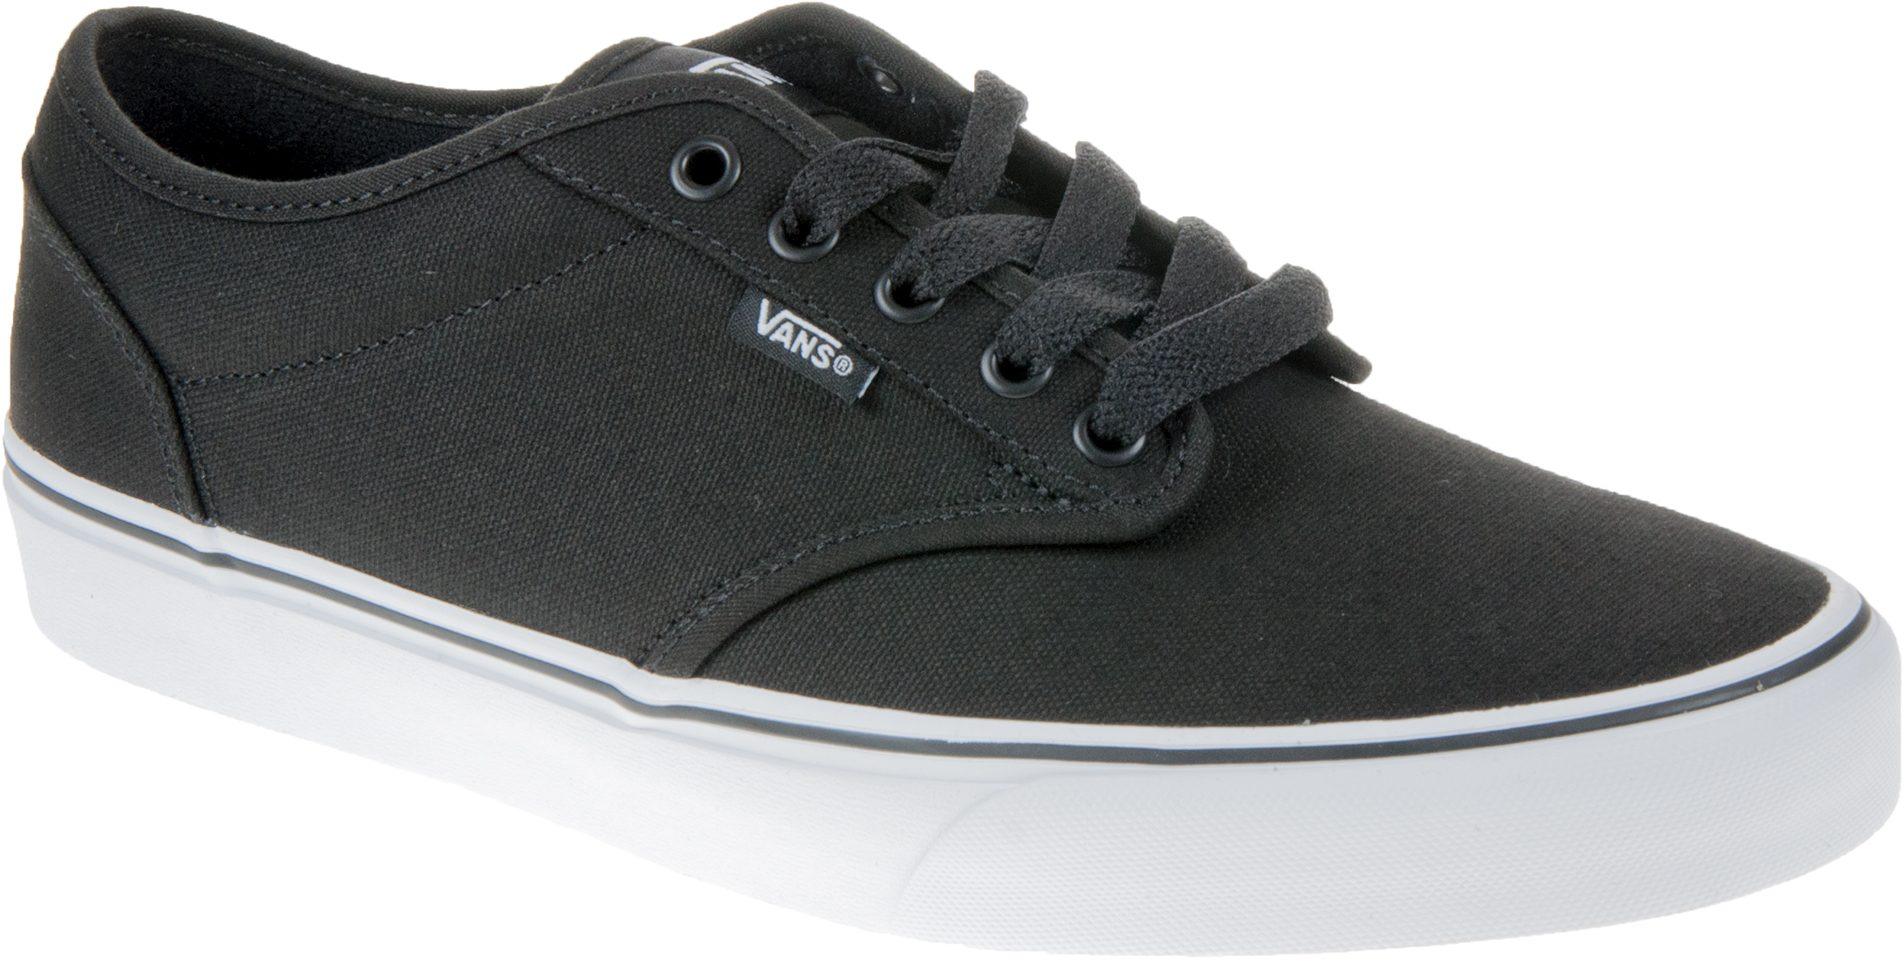 629d72b65640 Vans Atwood Black   White Canvas VN000TUY187 - Casual Shoes - Humphries  Shoes